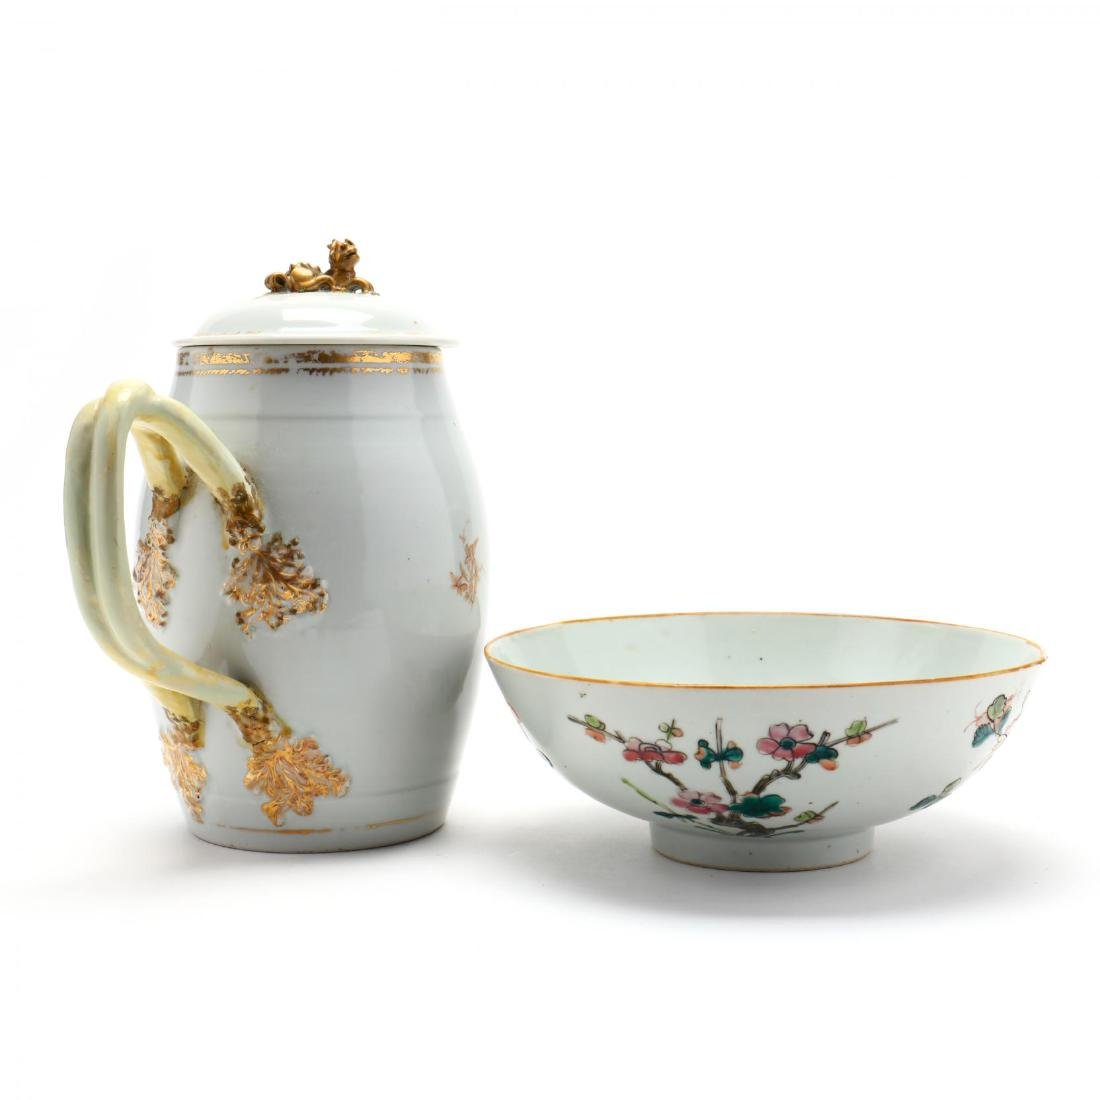 Antique Chinese Export Pitcher and Bowl - 3